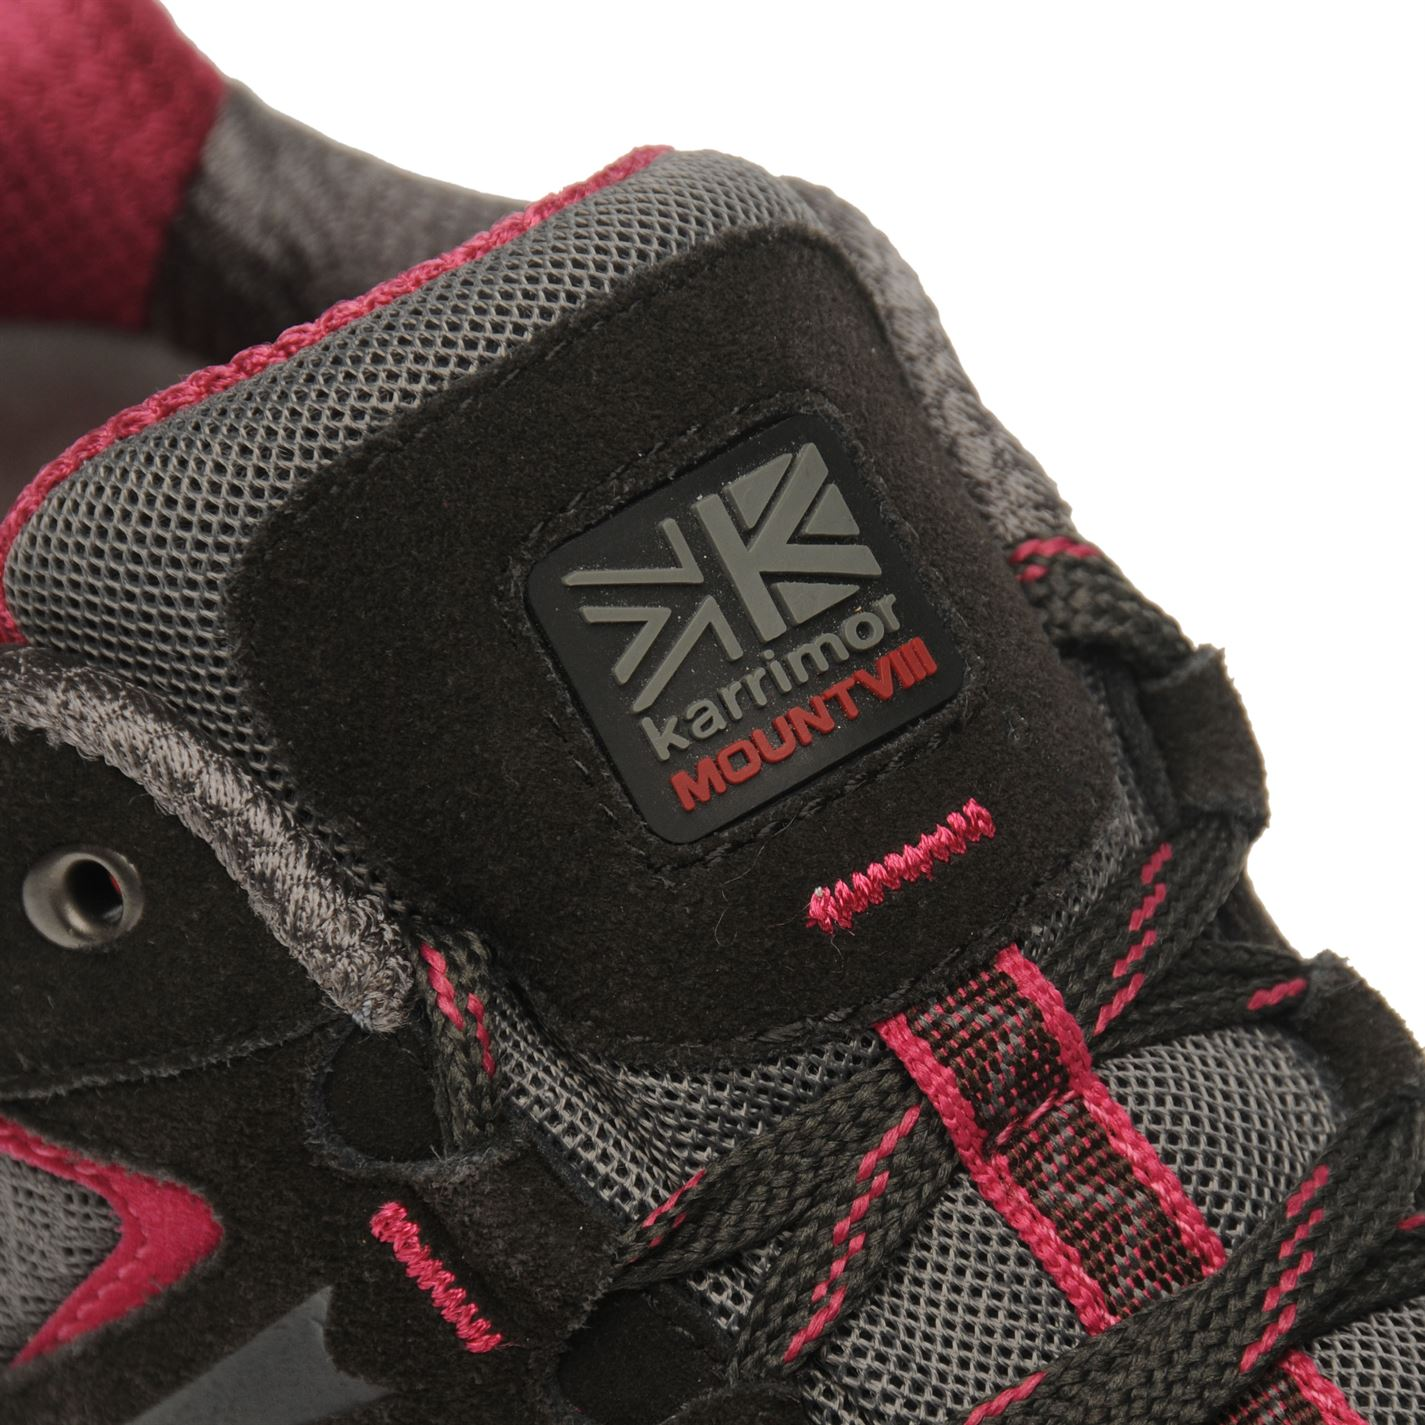 Karrimor-Womens-Mount-Low-Ladies-Walking-Shoes-Waterproof-Laced-Hiking-Trainers thumbnail 15